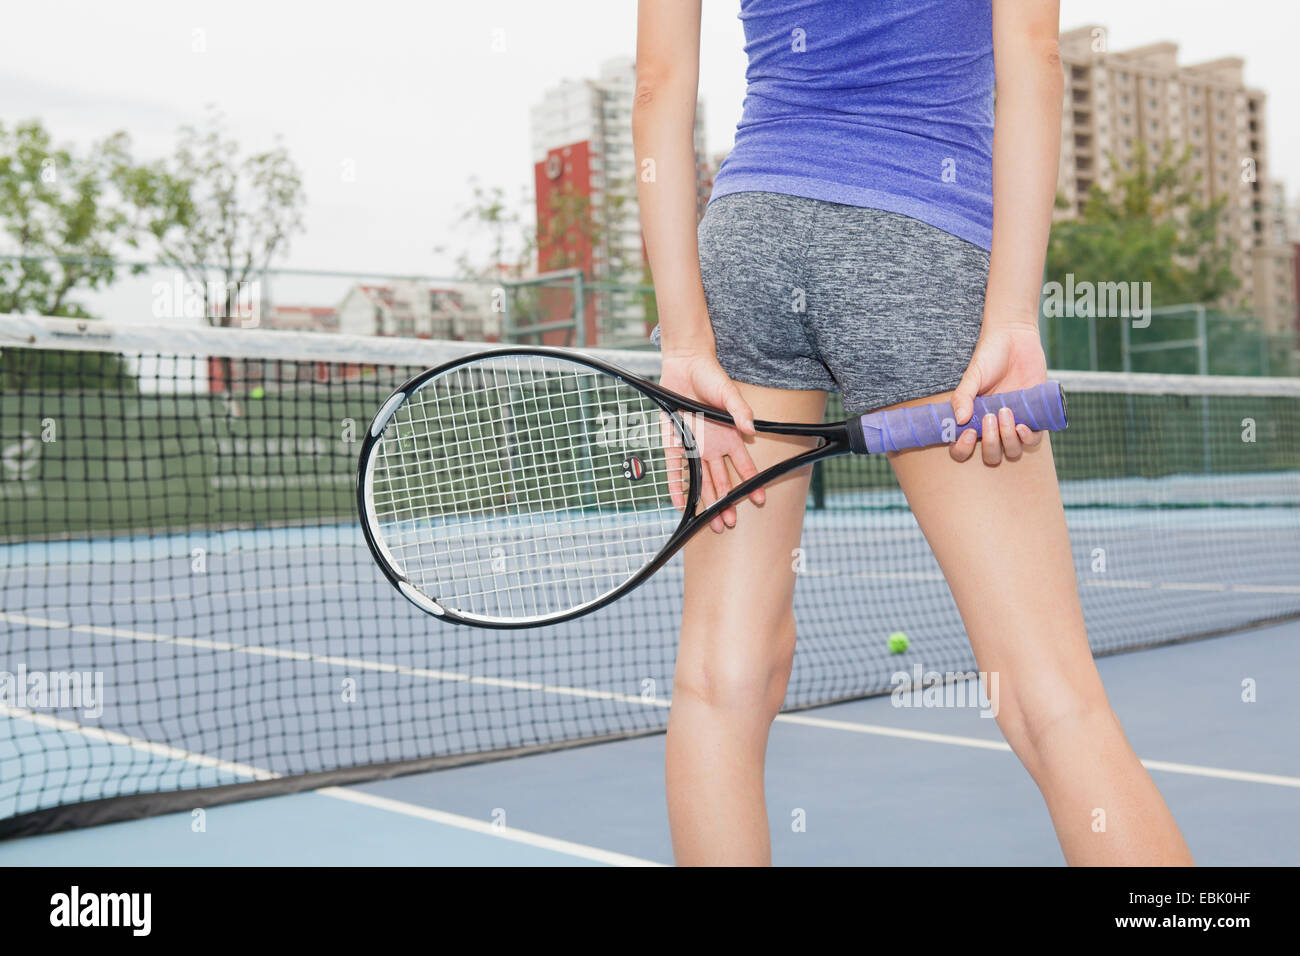 Cropped rear view of young female tennis player on tennis court - Stock Image